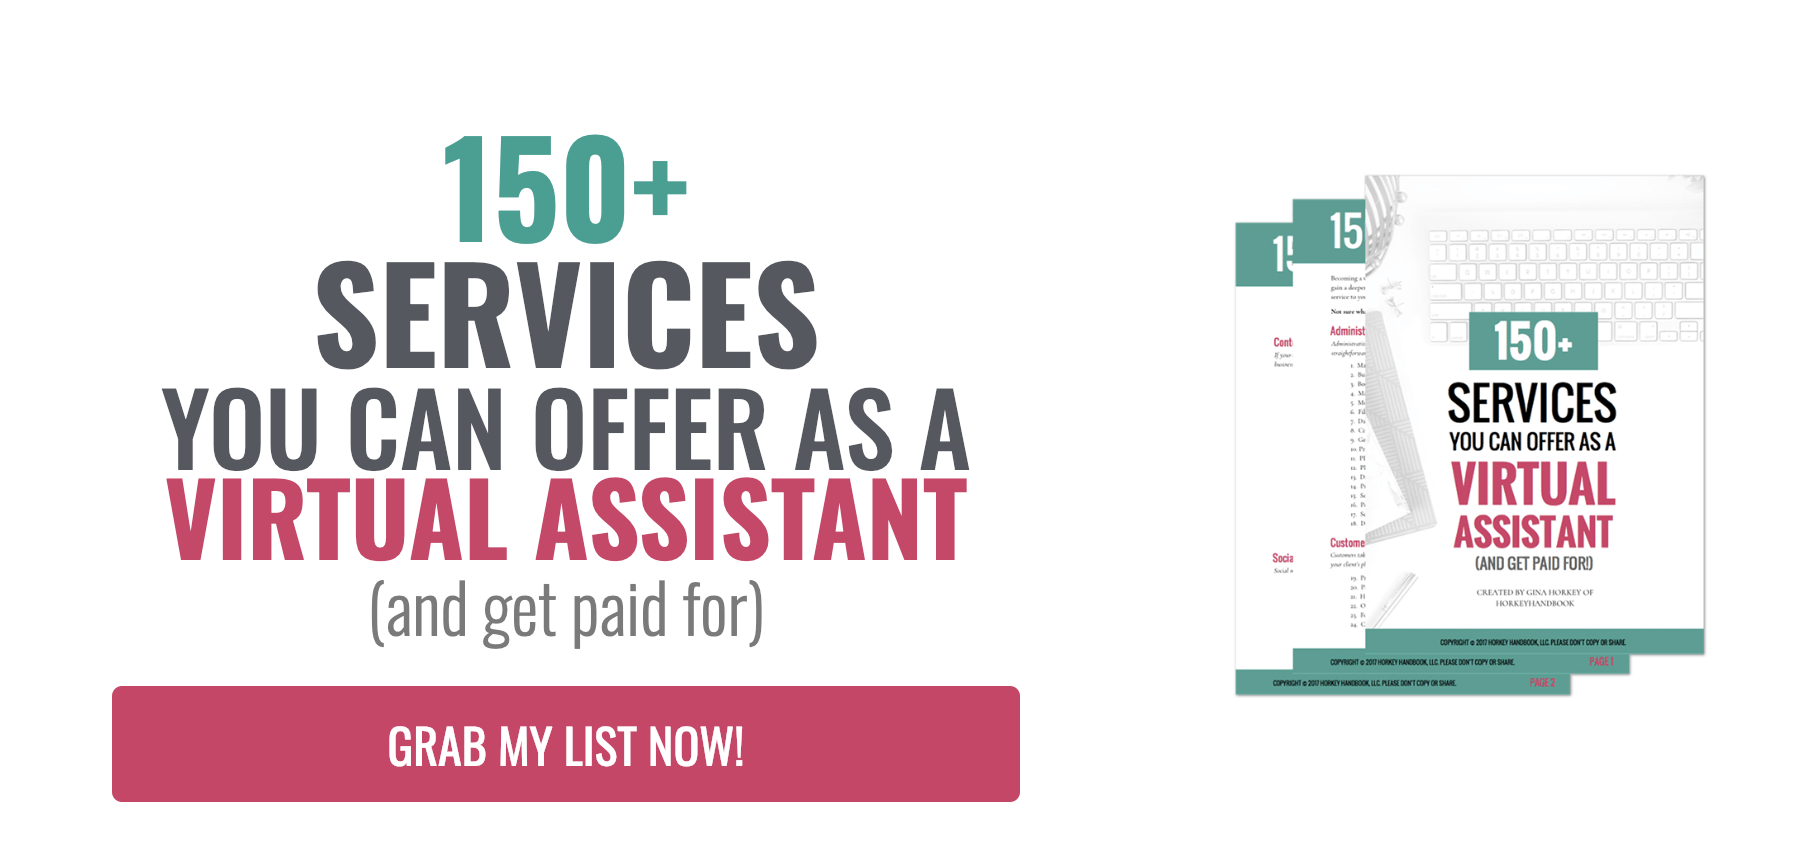 150+ services you can offer as a virtual assistant